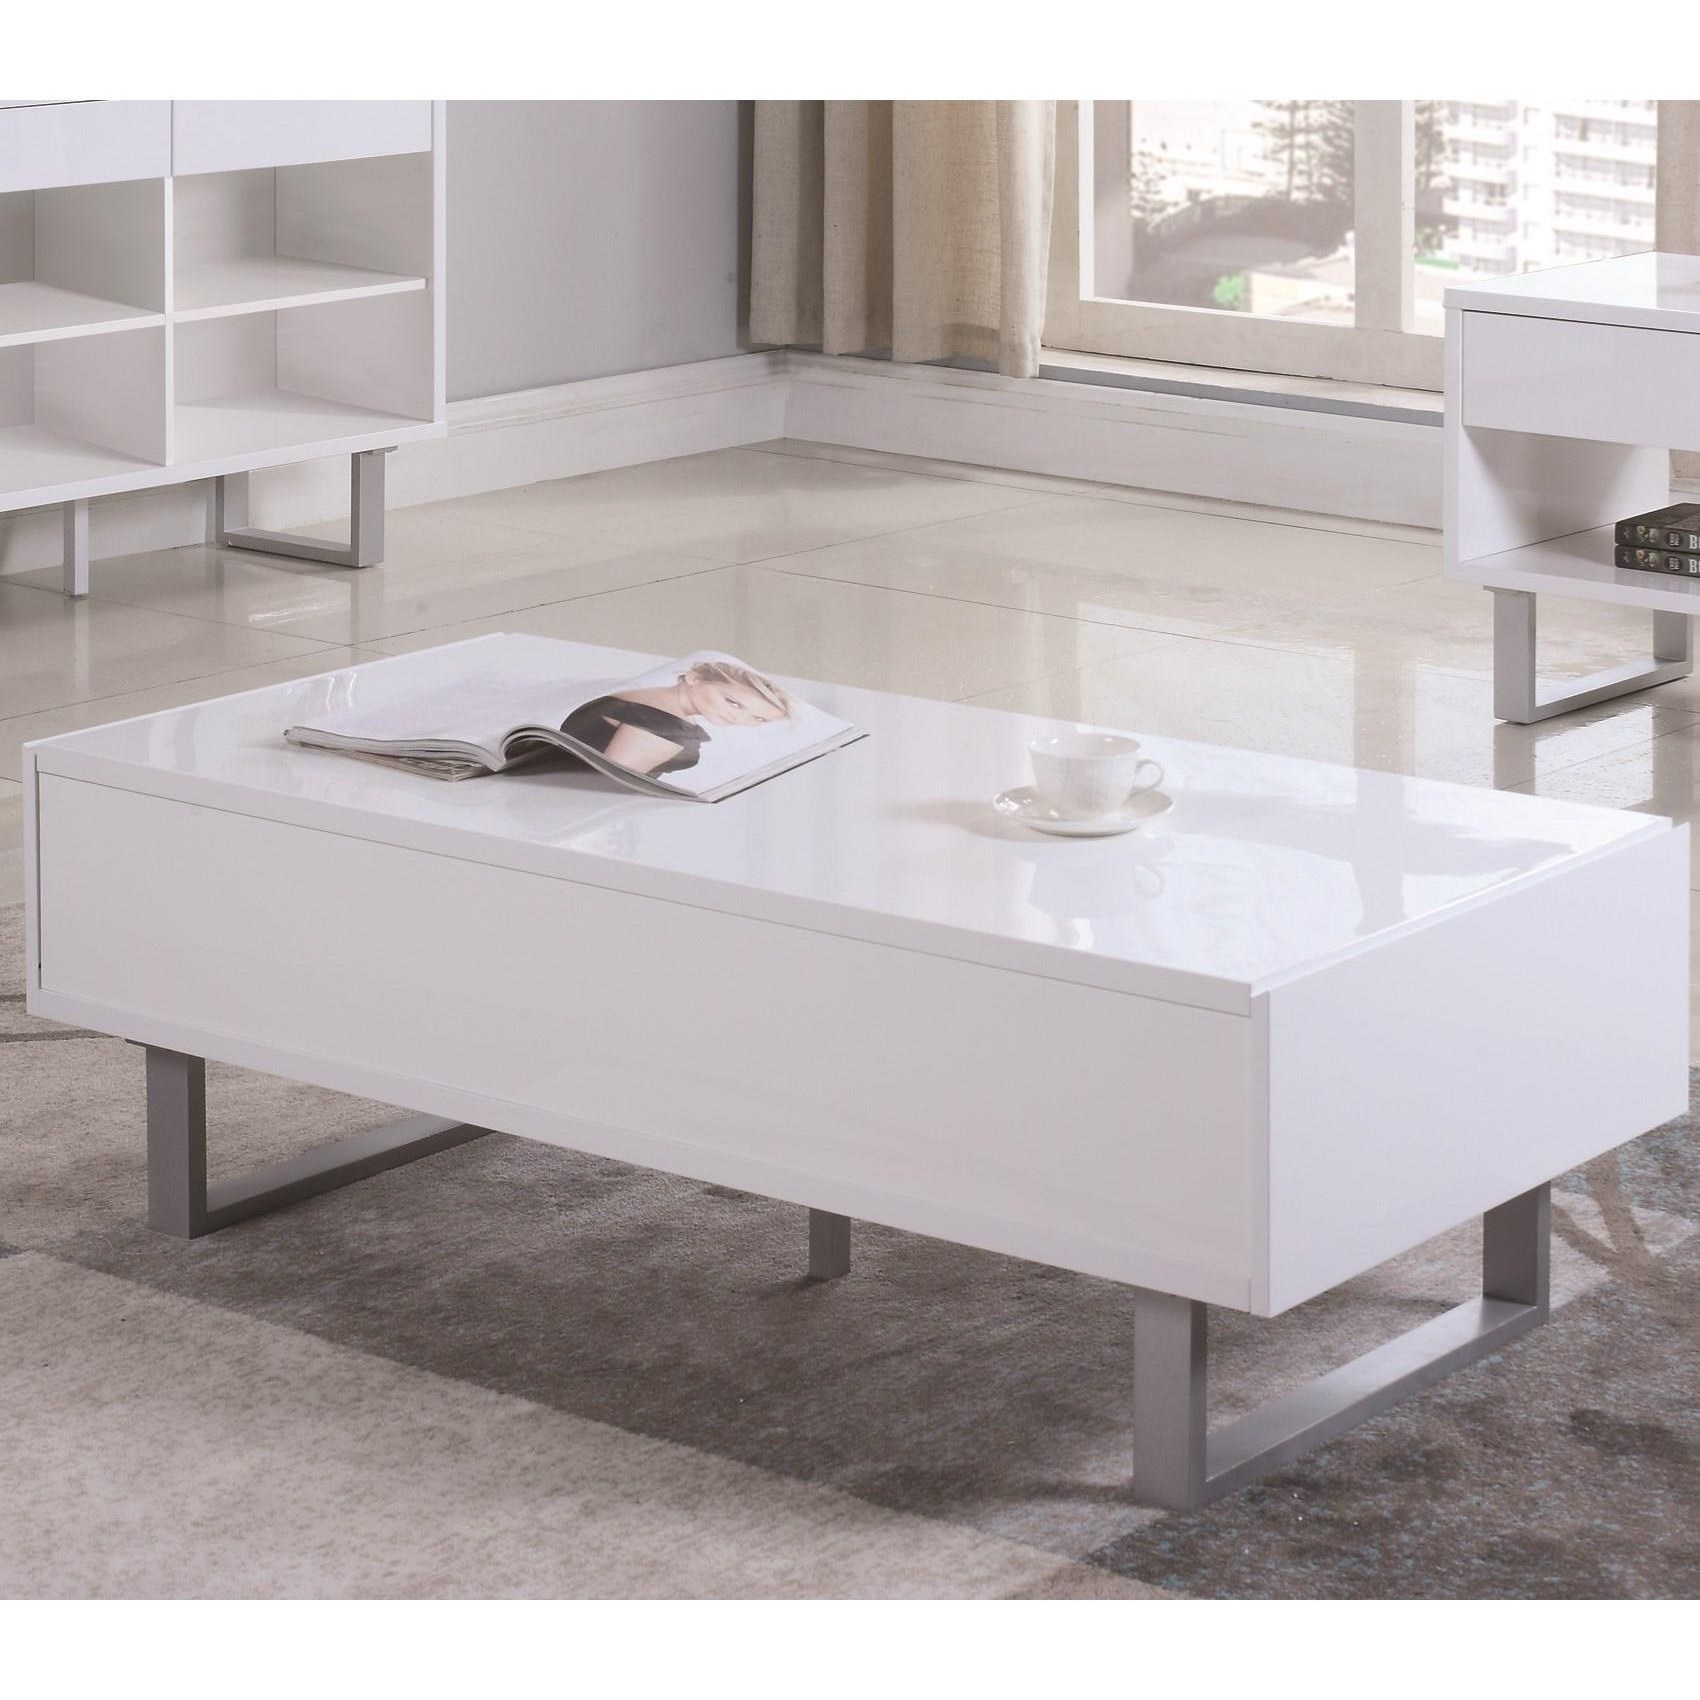 705698 rectangular coffee table with two drawers